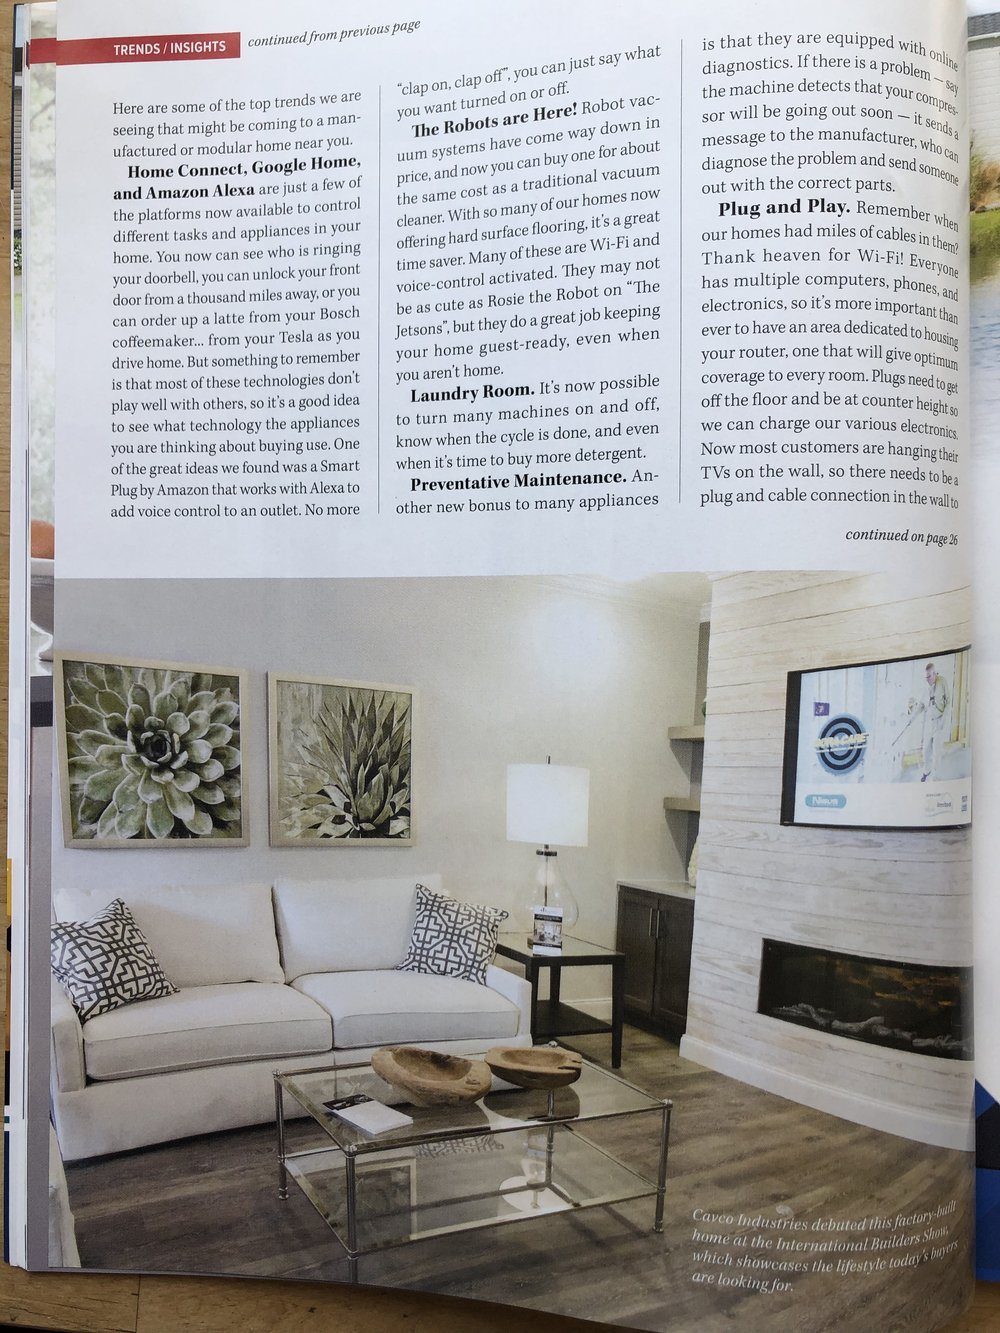 Our article in MH Insider identifies the builder, event that the home was part of, and the photographer was credited on the front page.